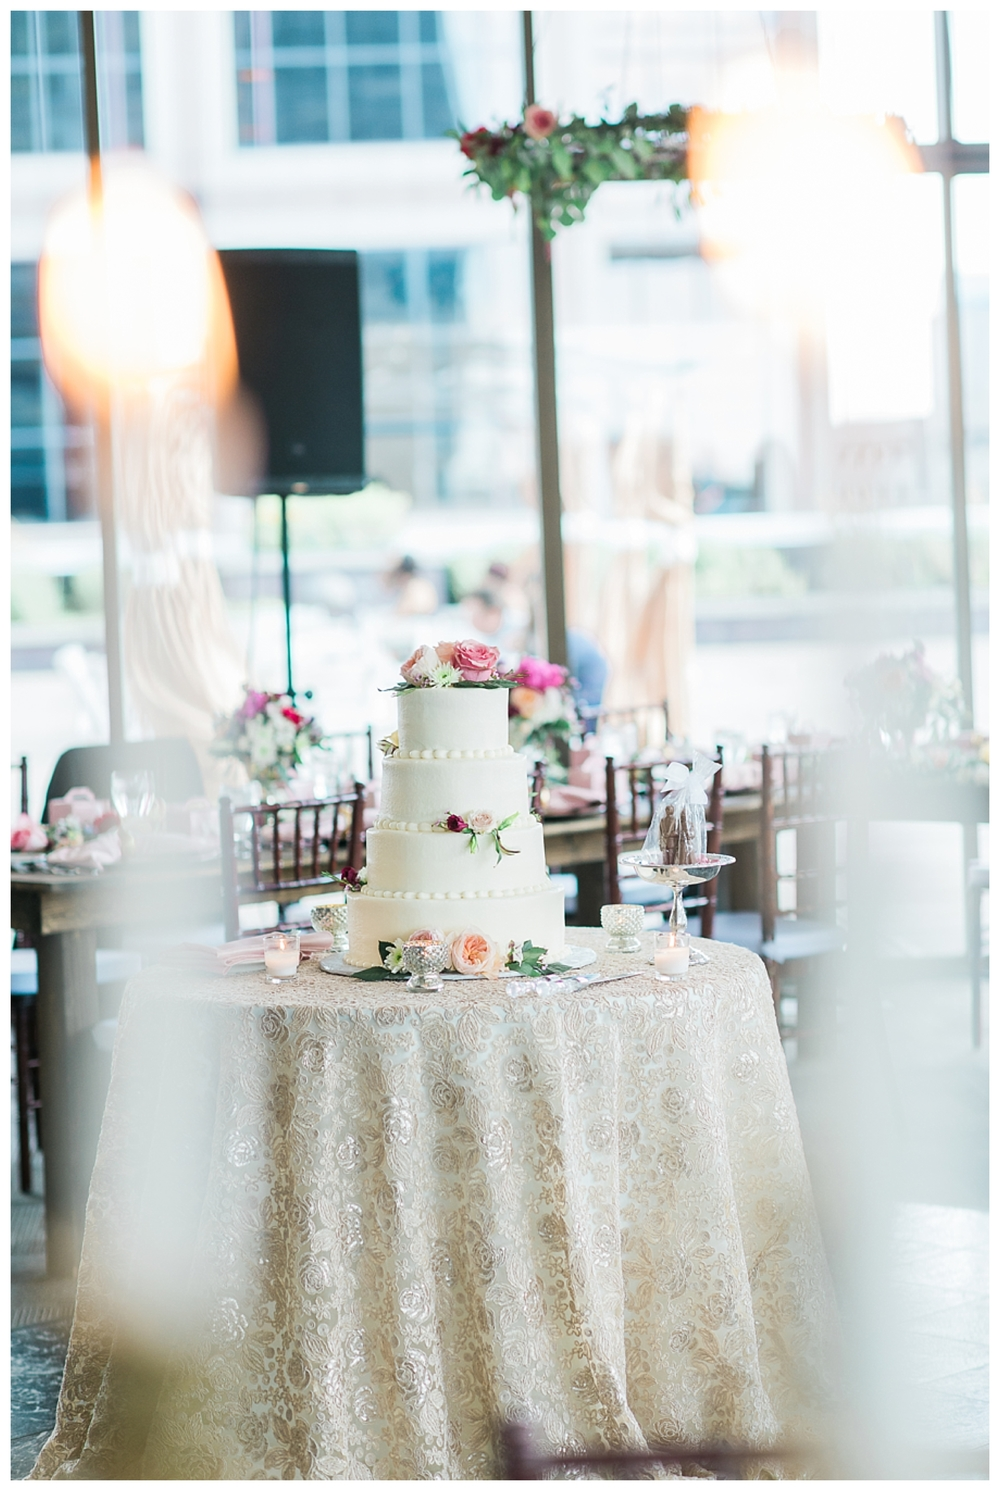 Rebecca_Bridges_Photography_Indianapolis_Wedding_Photographer_4756.jpg